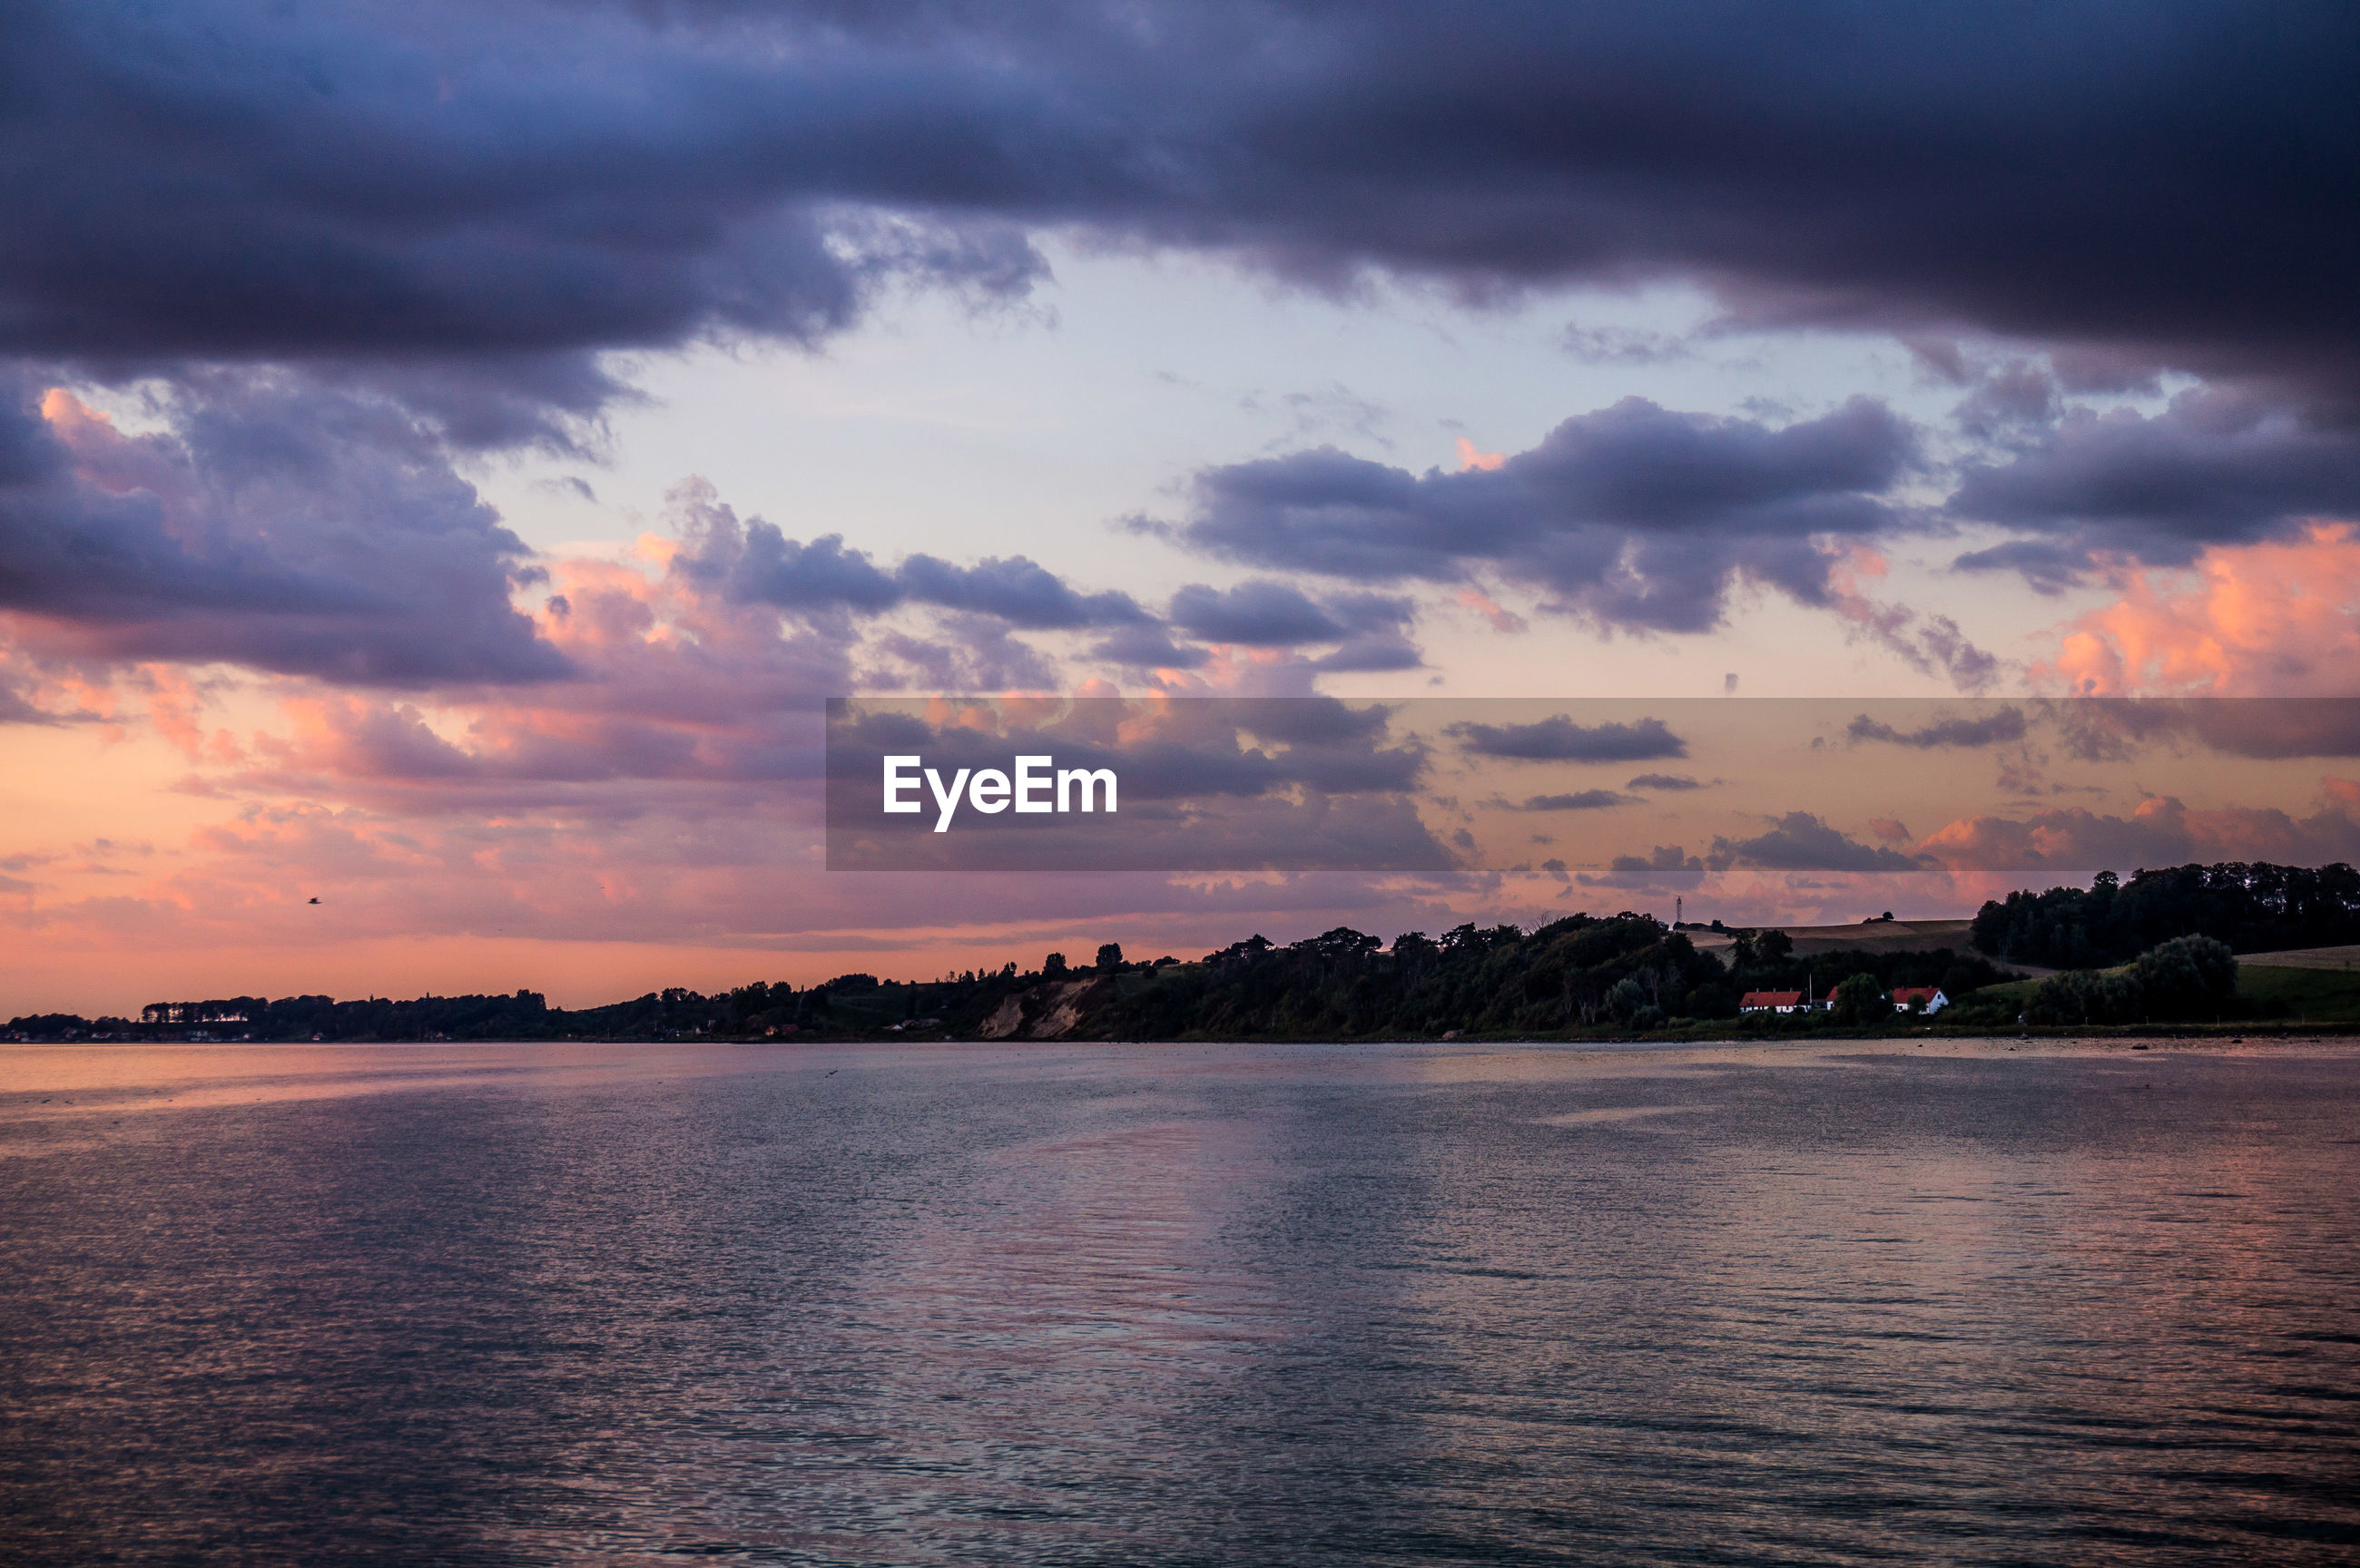 sunset, cloud - sky, sky, beauty in nature, scenics, nature, tranquility, tranquil scene, water, no people, sea, outdoors, day